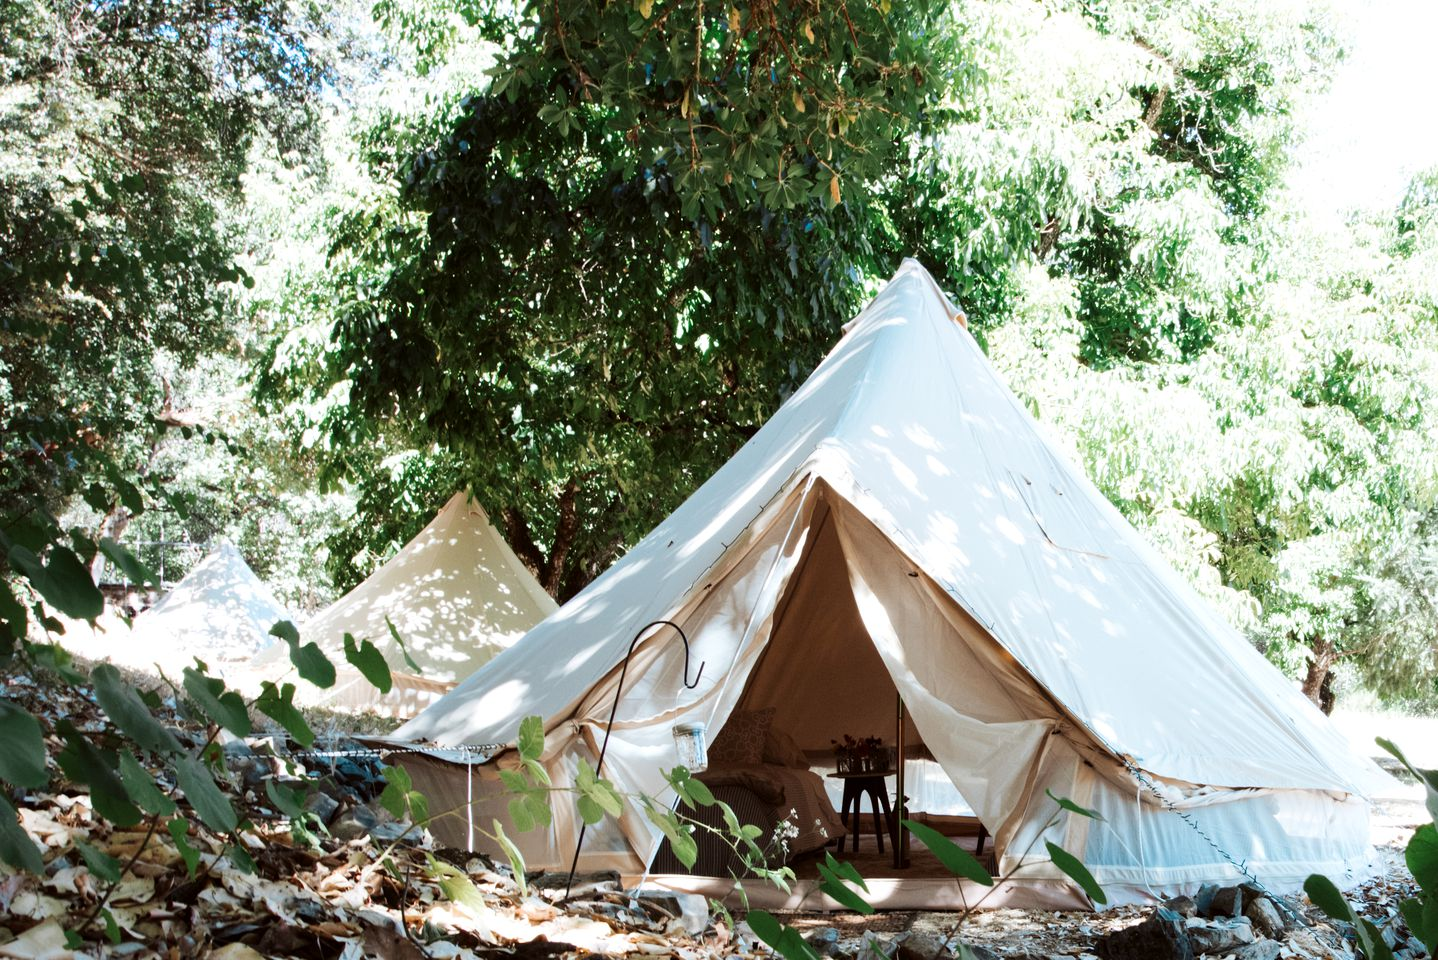 Glamping tent rental that's perfect for a unique vacation in California